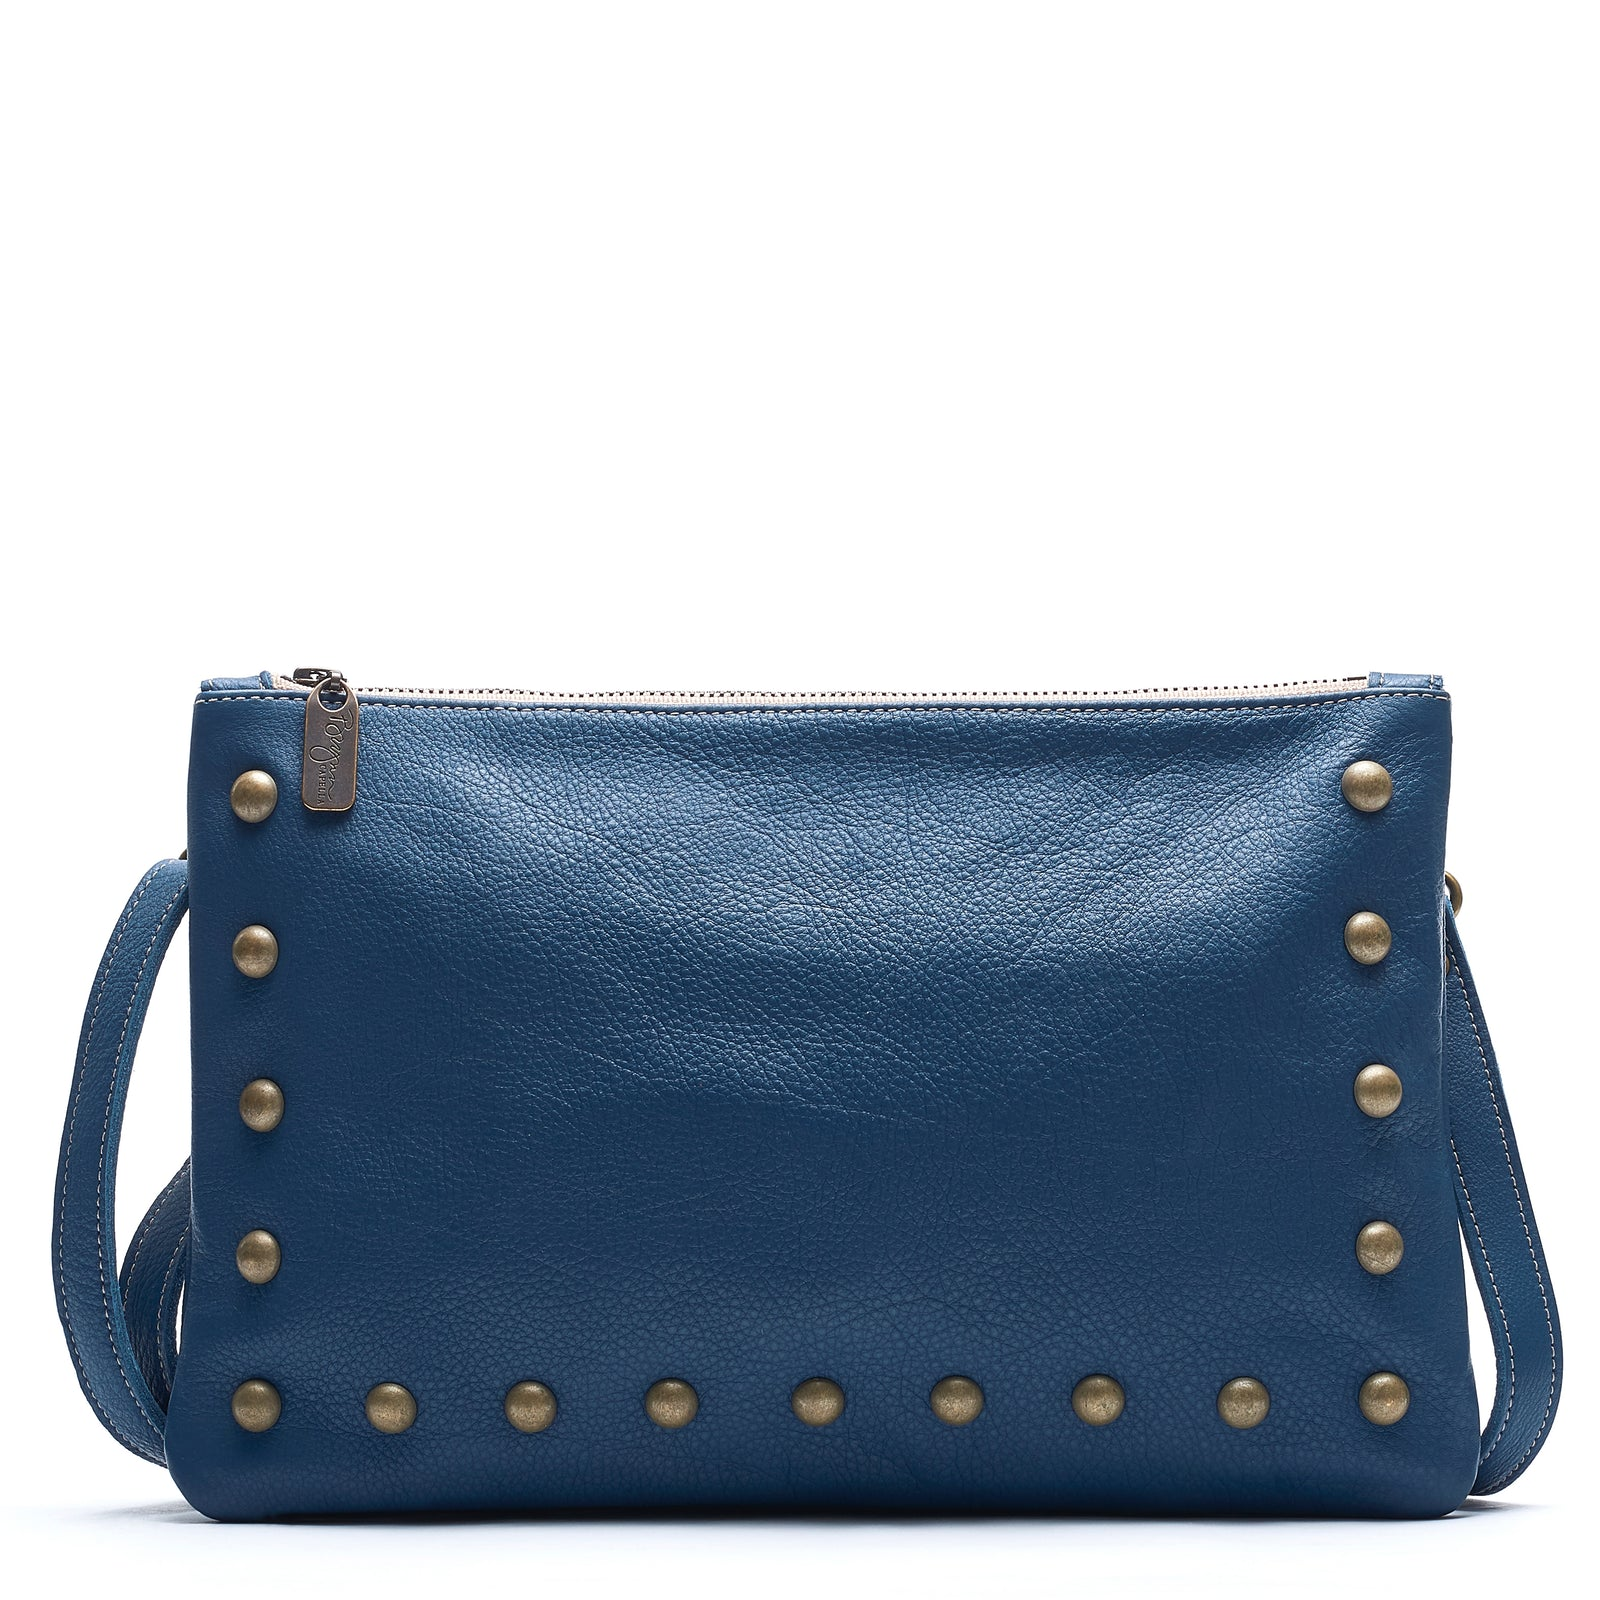 Nikki Clutch/Crossbody - Moorea Bay - Brynn Capella, Small Crossbody